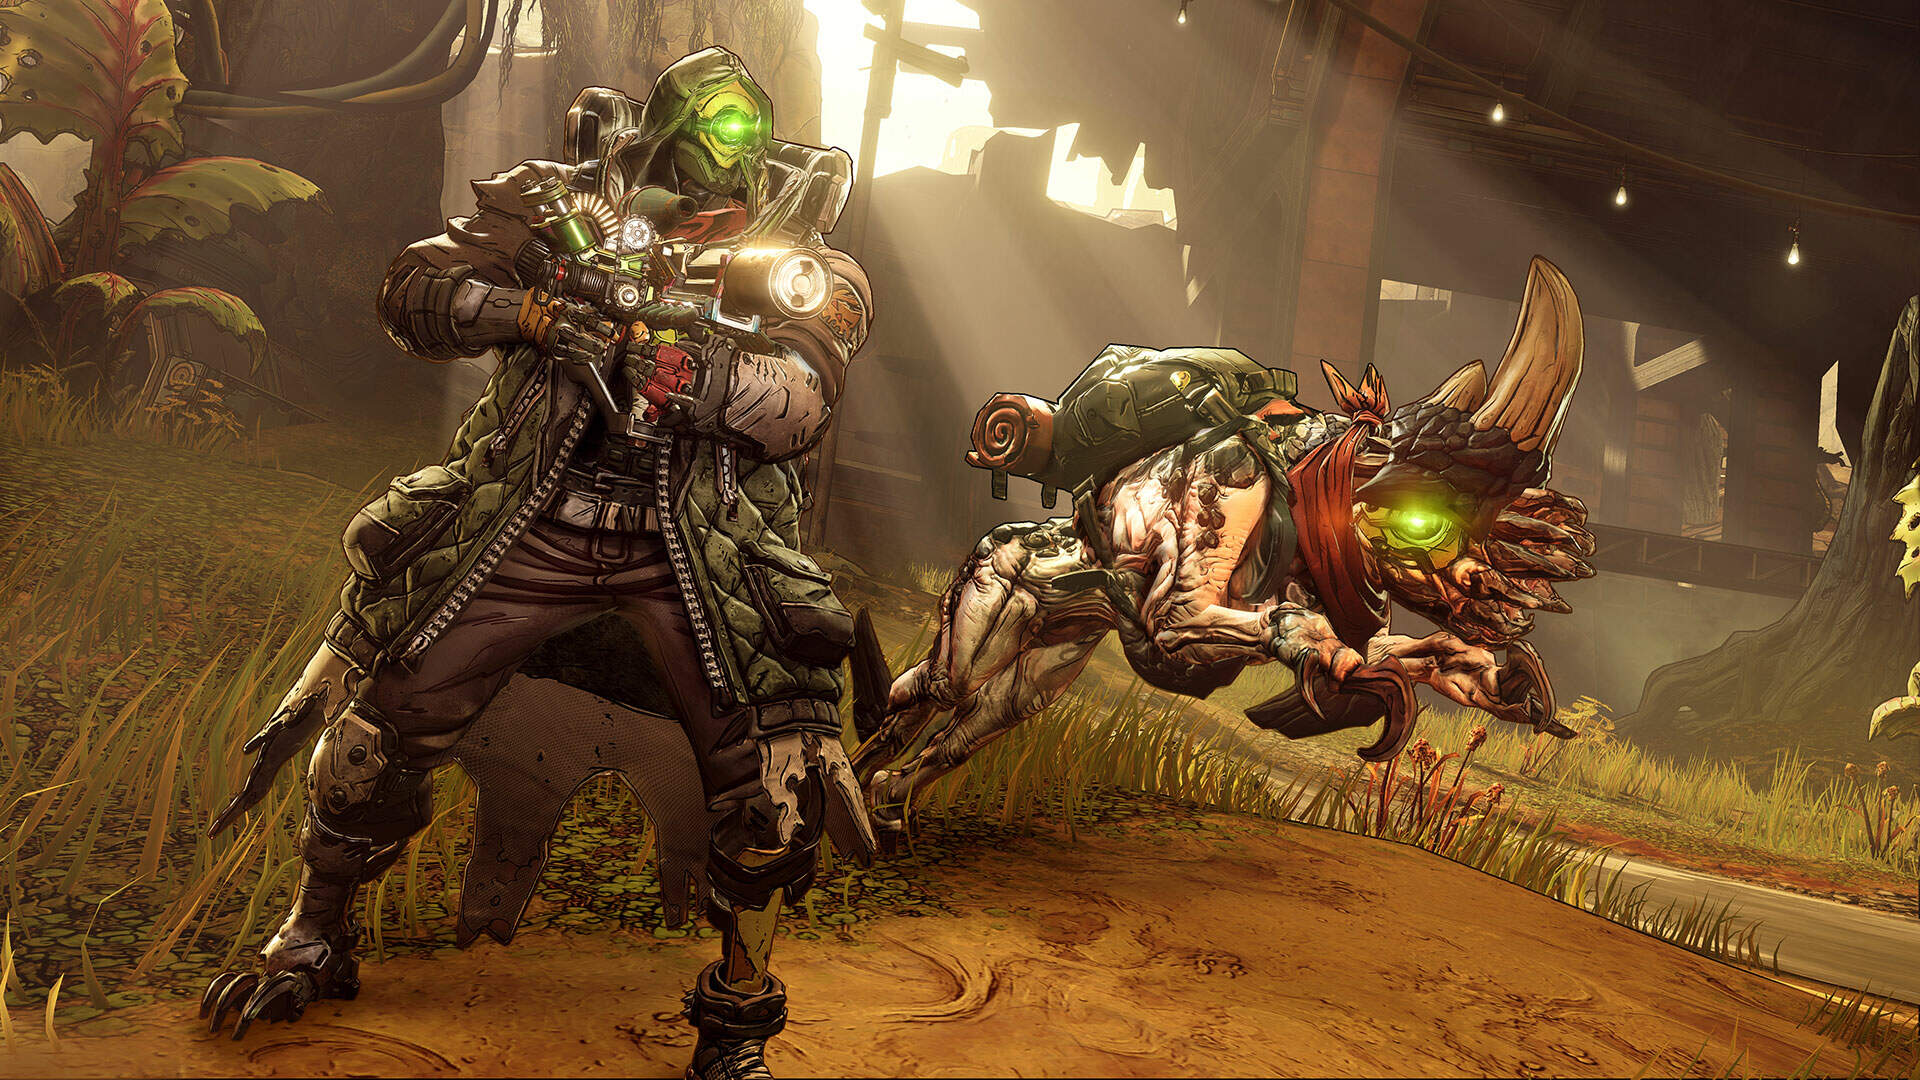 """No Current Plans"" for Borderlands 3 DLC Characters, Gearbox Confirms"